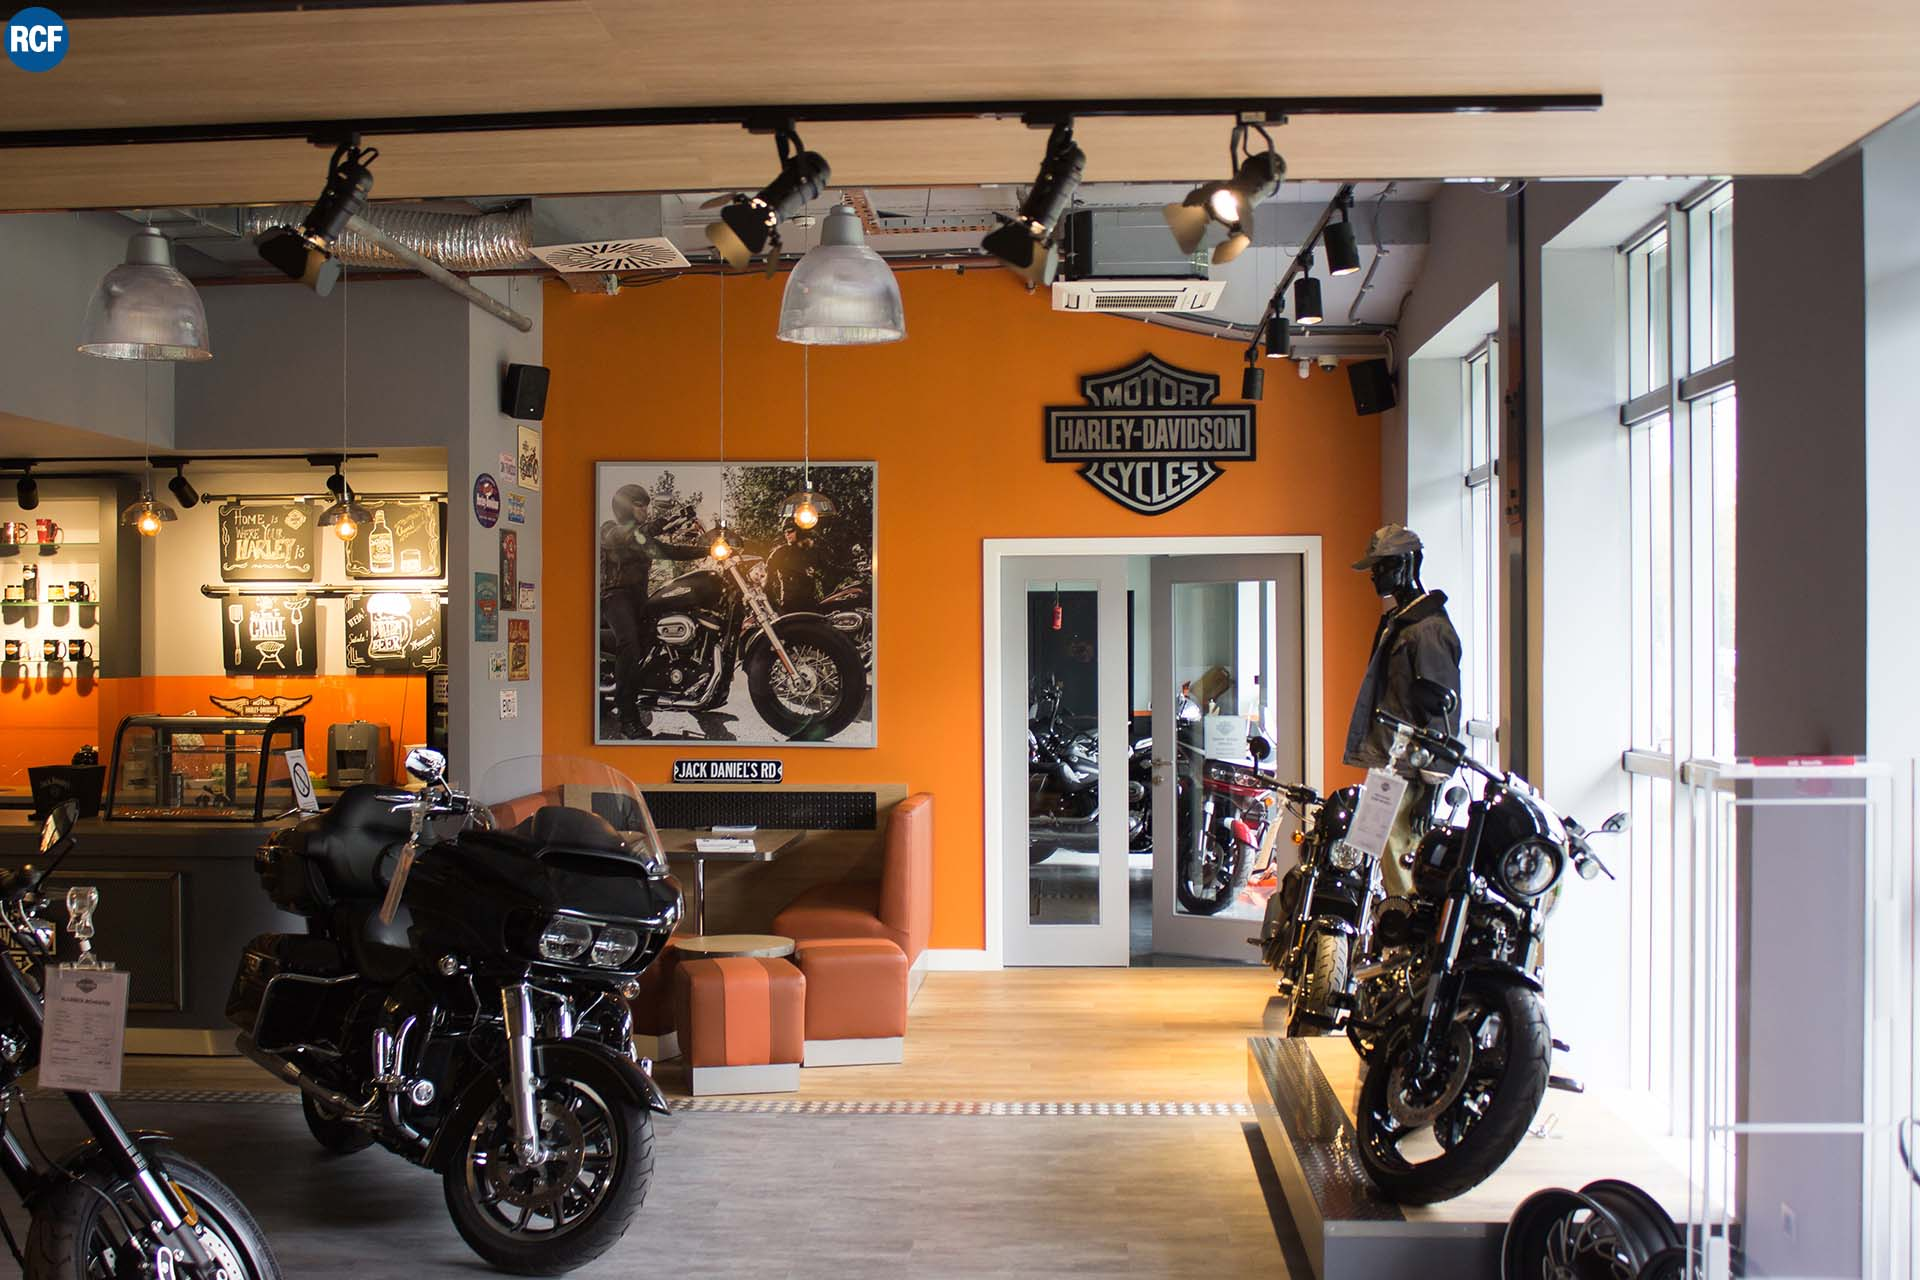 Multi-zone RCF Sound System for the new Harley-Davidson Retail Shop in Belgrade